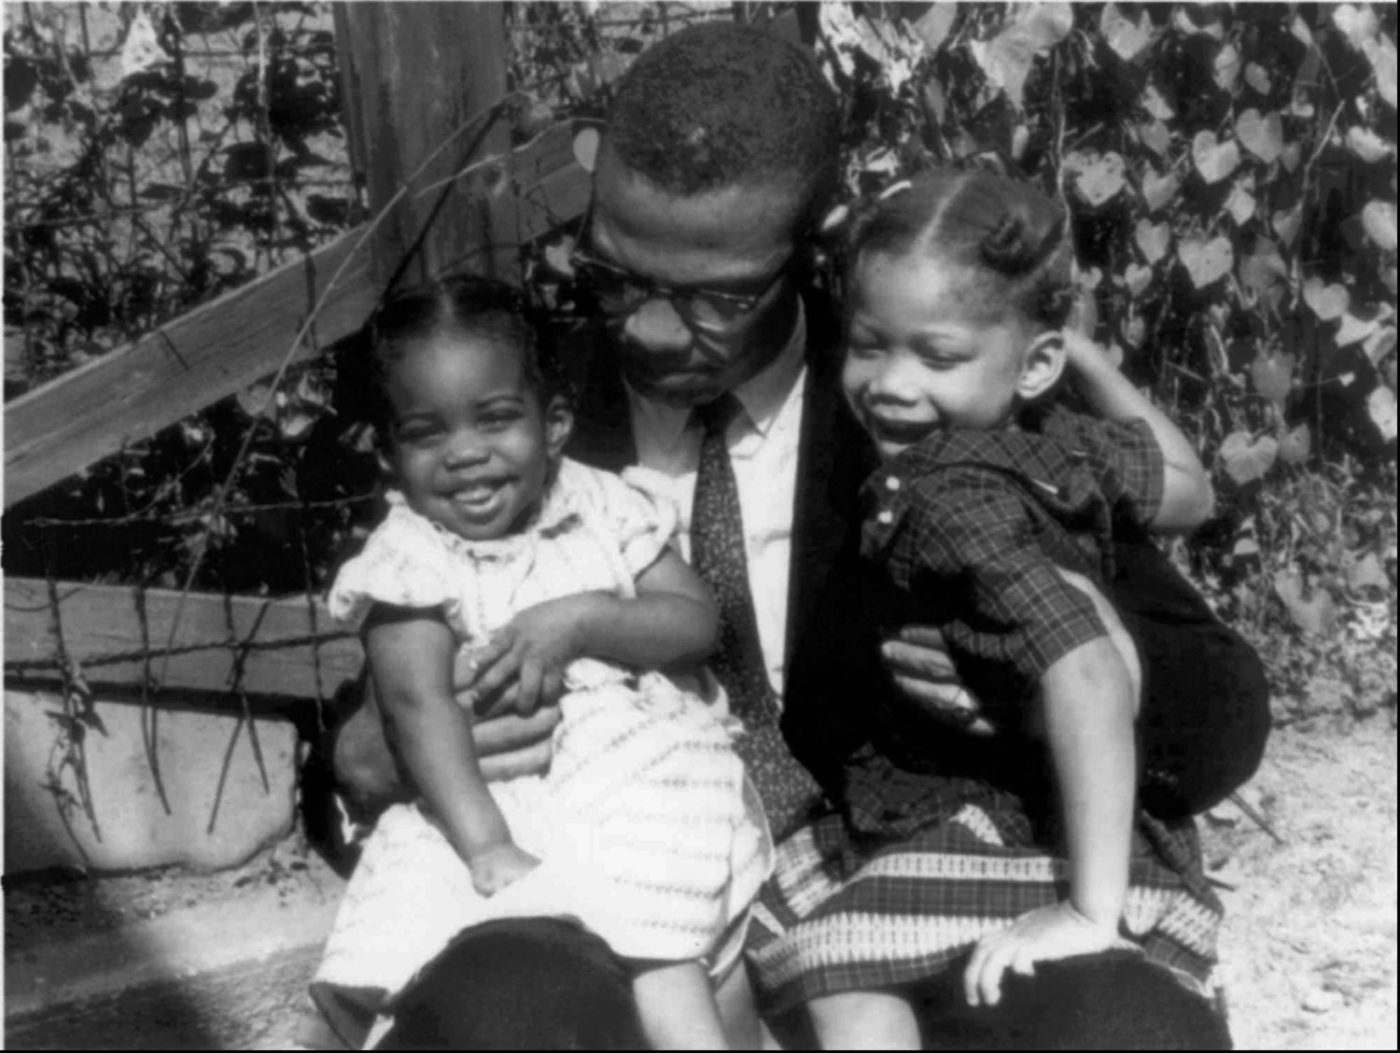 Malcolm-with-daughters-Qubilah-Atallah-by-CBS-News-1400x1053, Former cop's deathbed confession reveals his role in assassinating Malcolm X, National News & Views